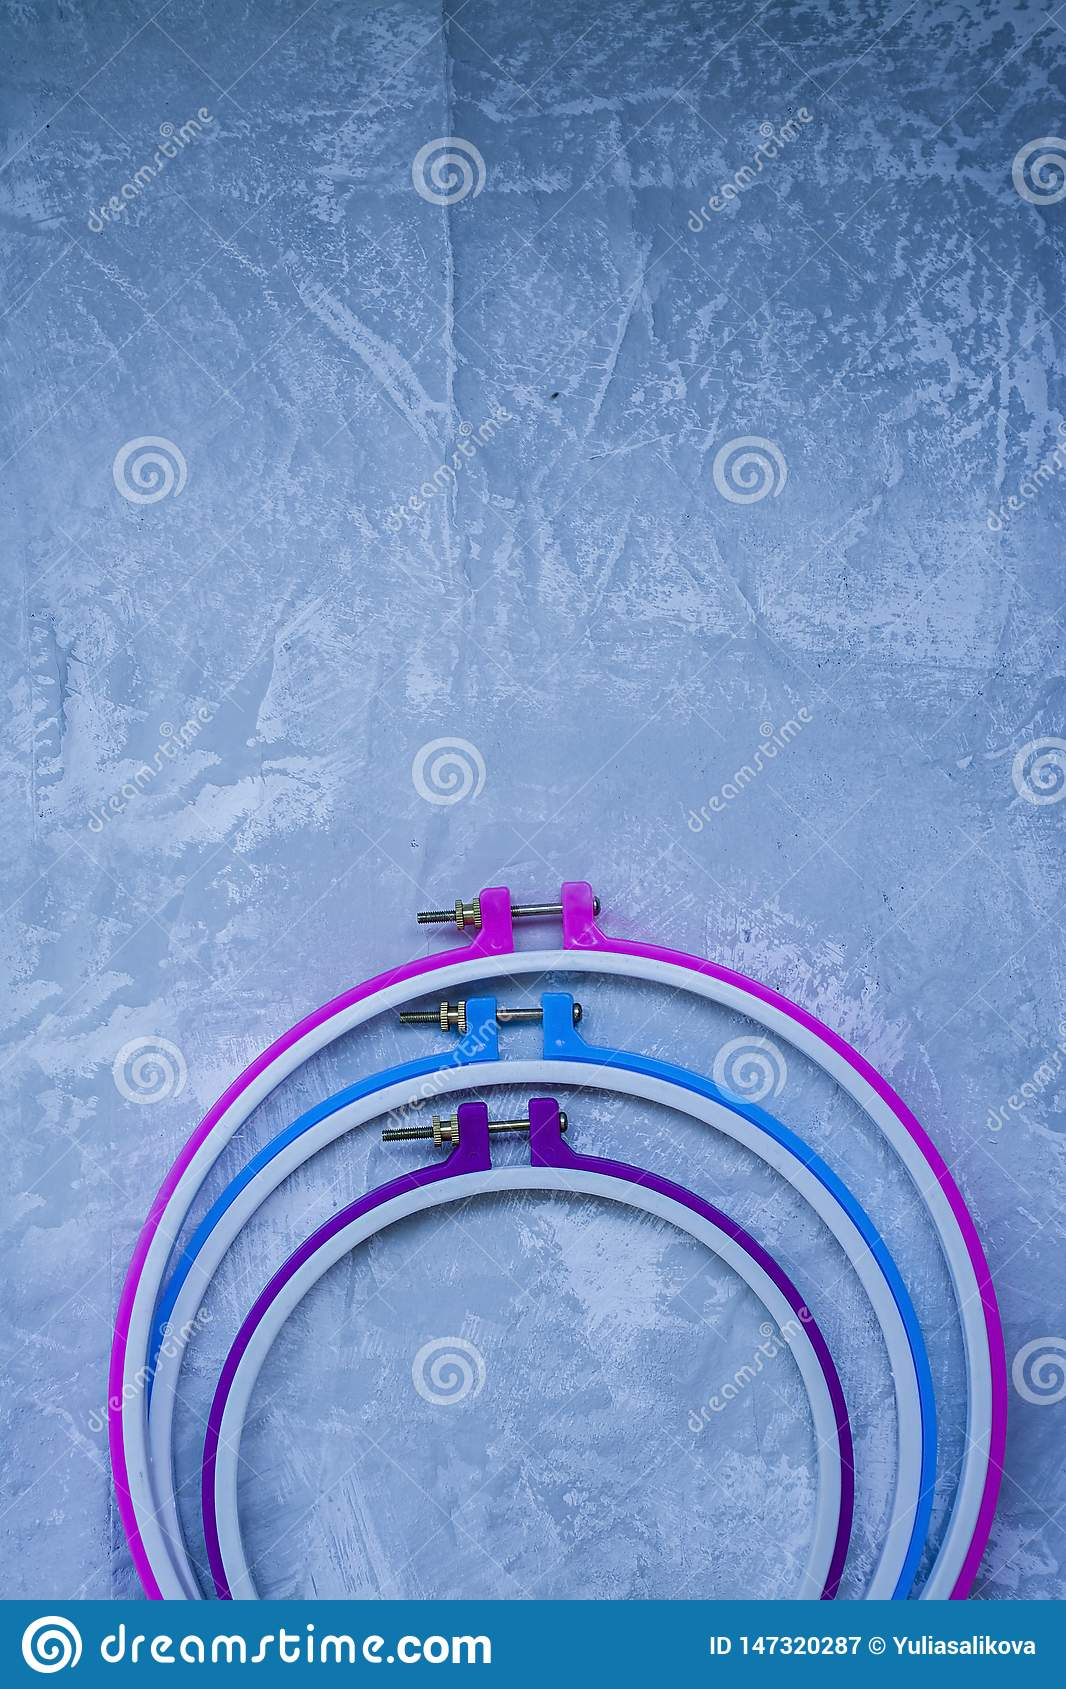 Plastic hoop on a light background under the concrete. Three hoops pink, blue, purple. View from above. Space under the text